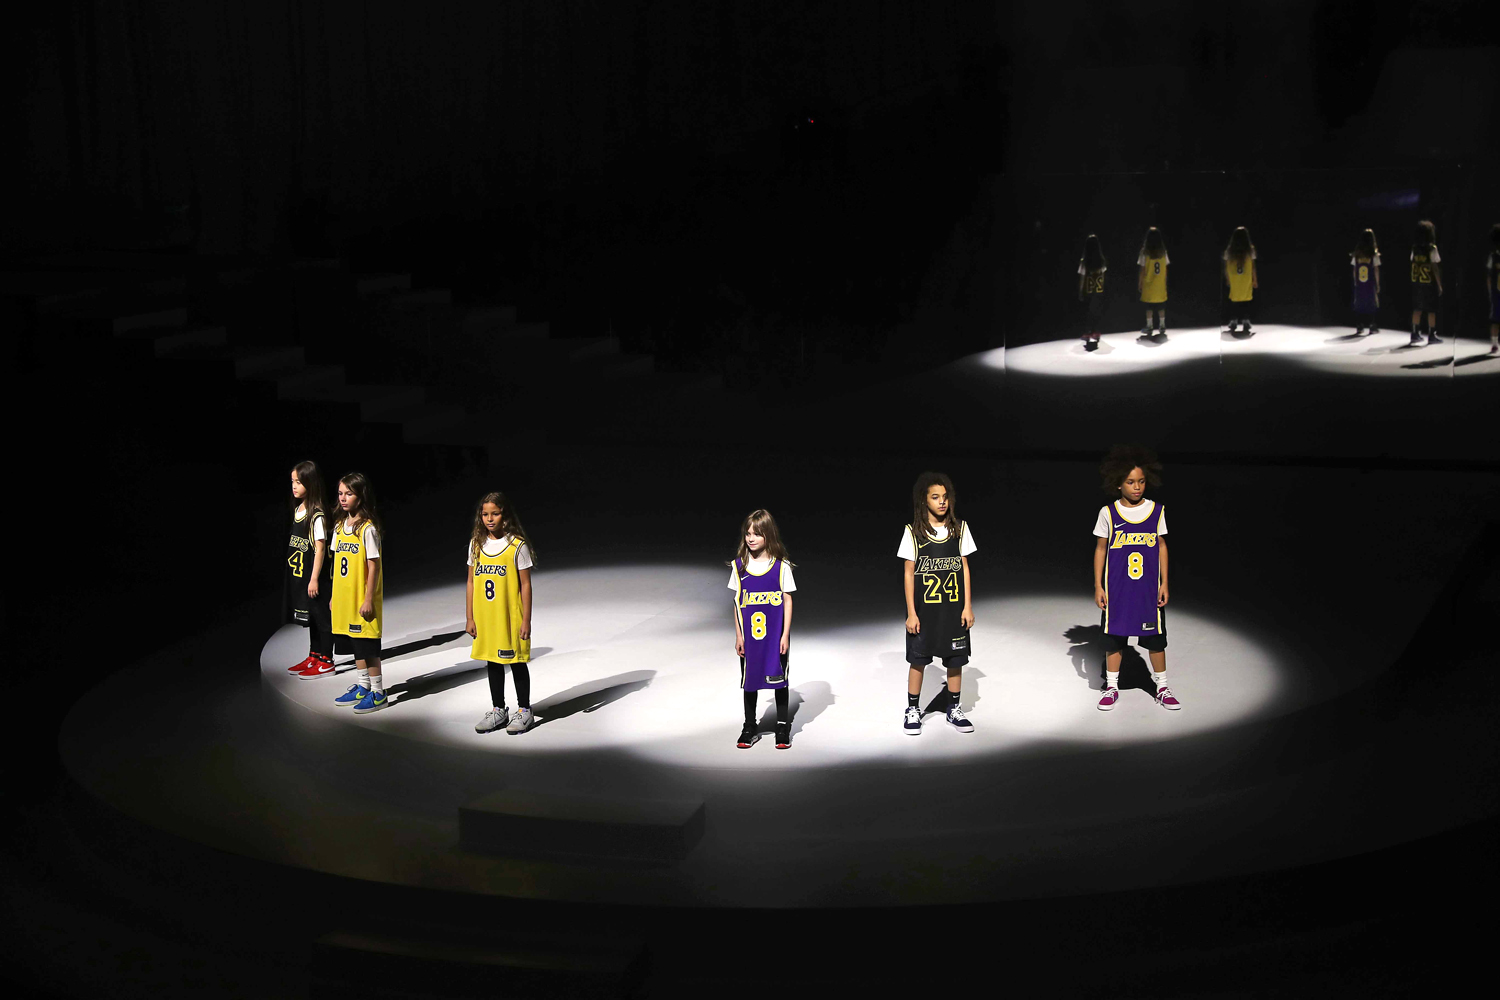 Models are seen honoring Kobe Bryant during the 2020 Tokyo Olympic collection fashion show